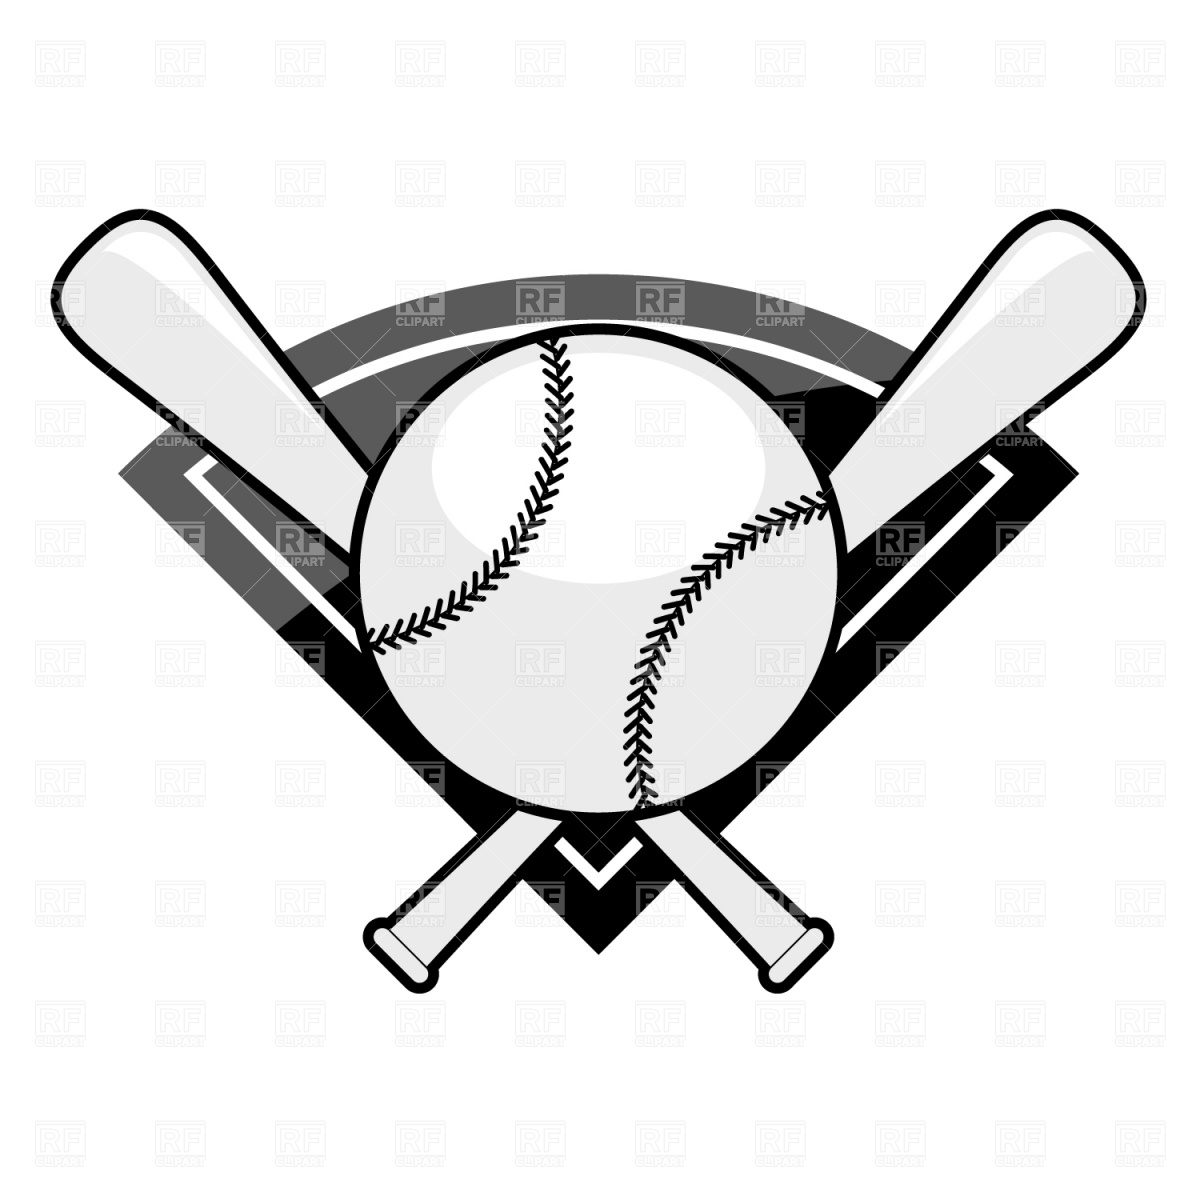 Bat black and white crossed baseball bats clipart black and white 2.